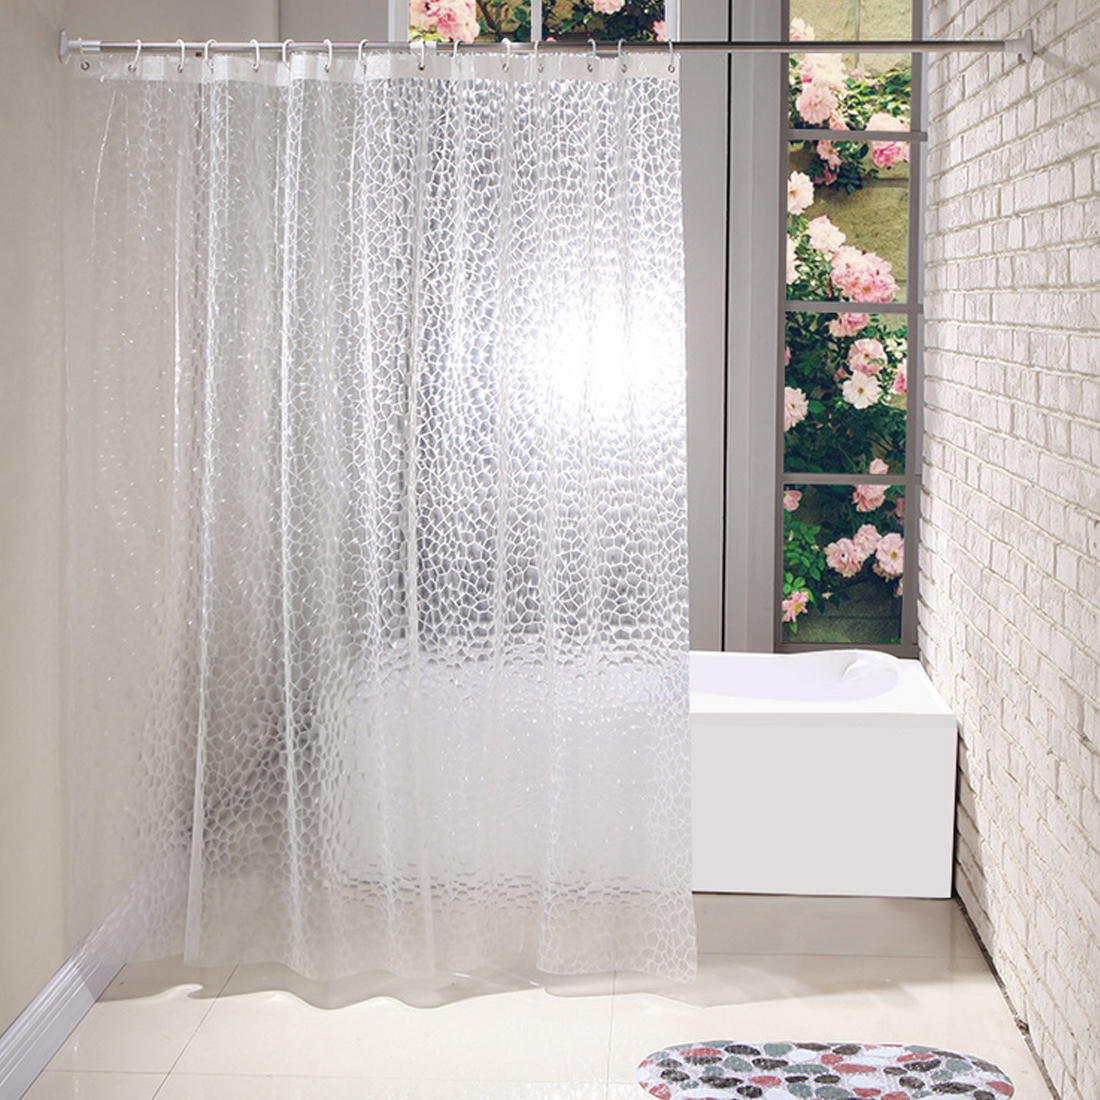 1.8m*1.8m 3D Water Cube Thickened for Bathroom Bath Shower Curtain Waterproof